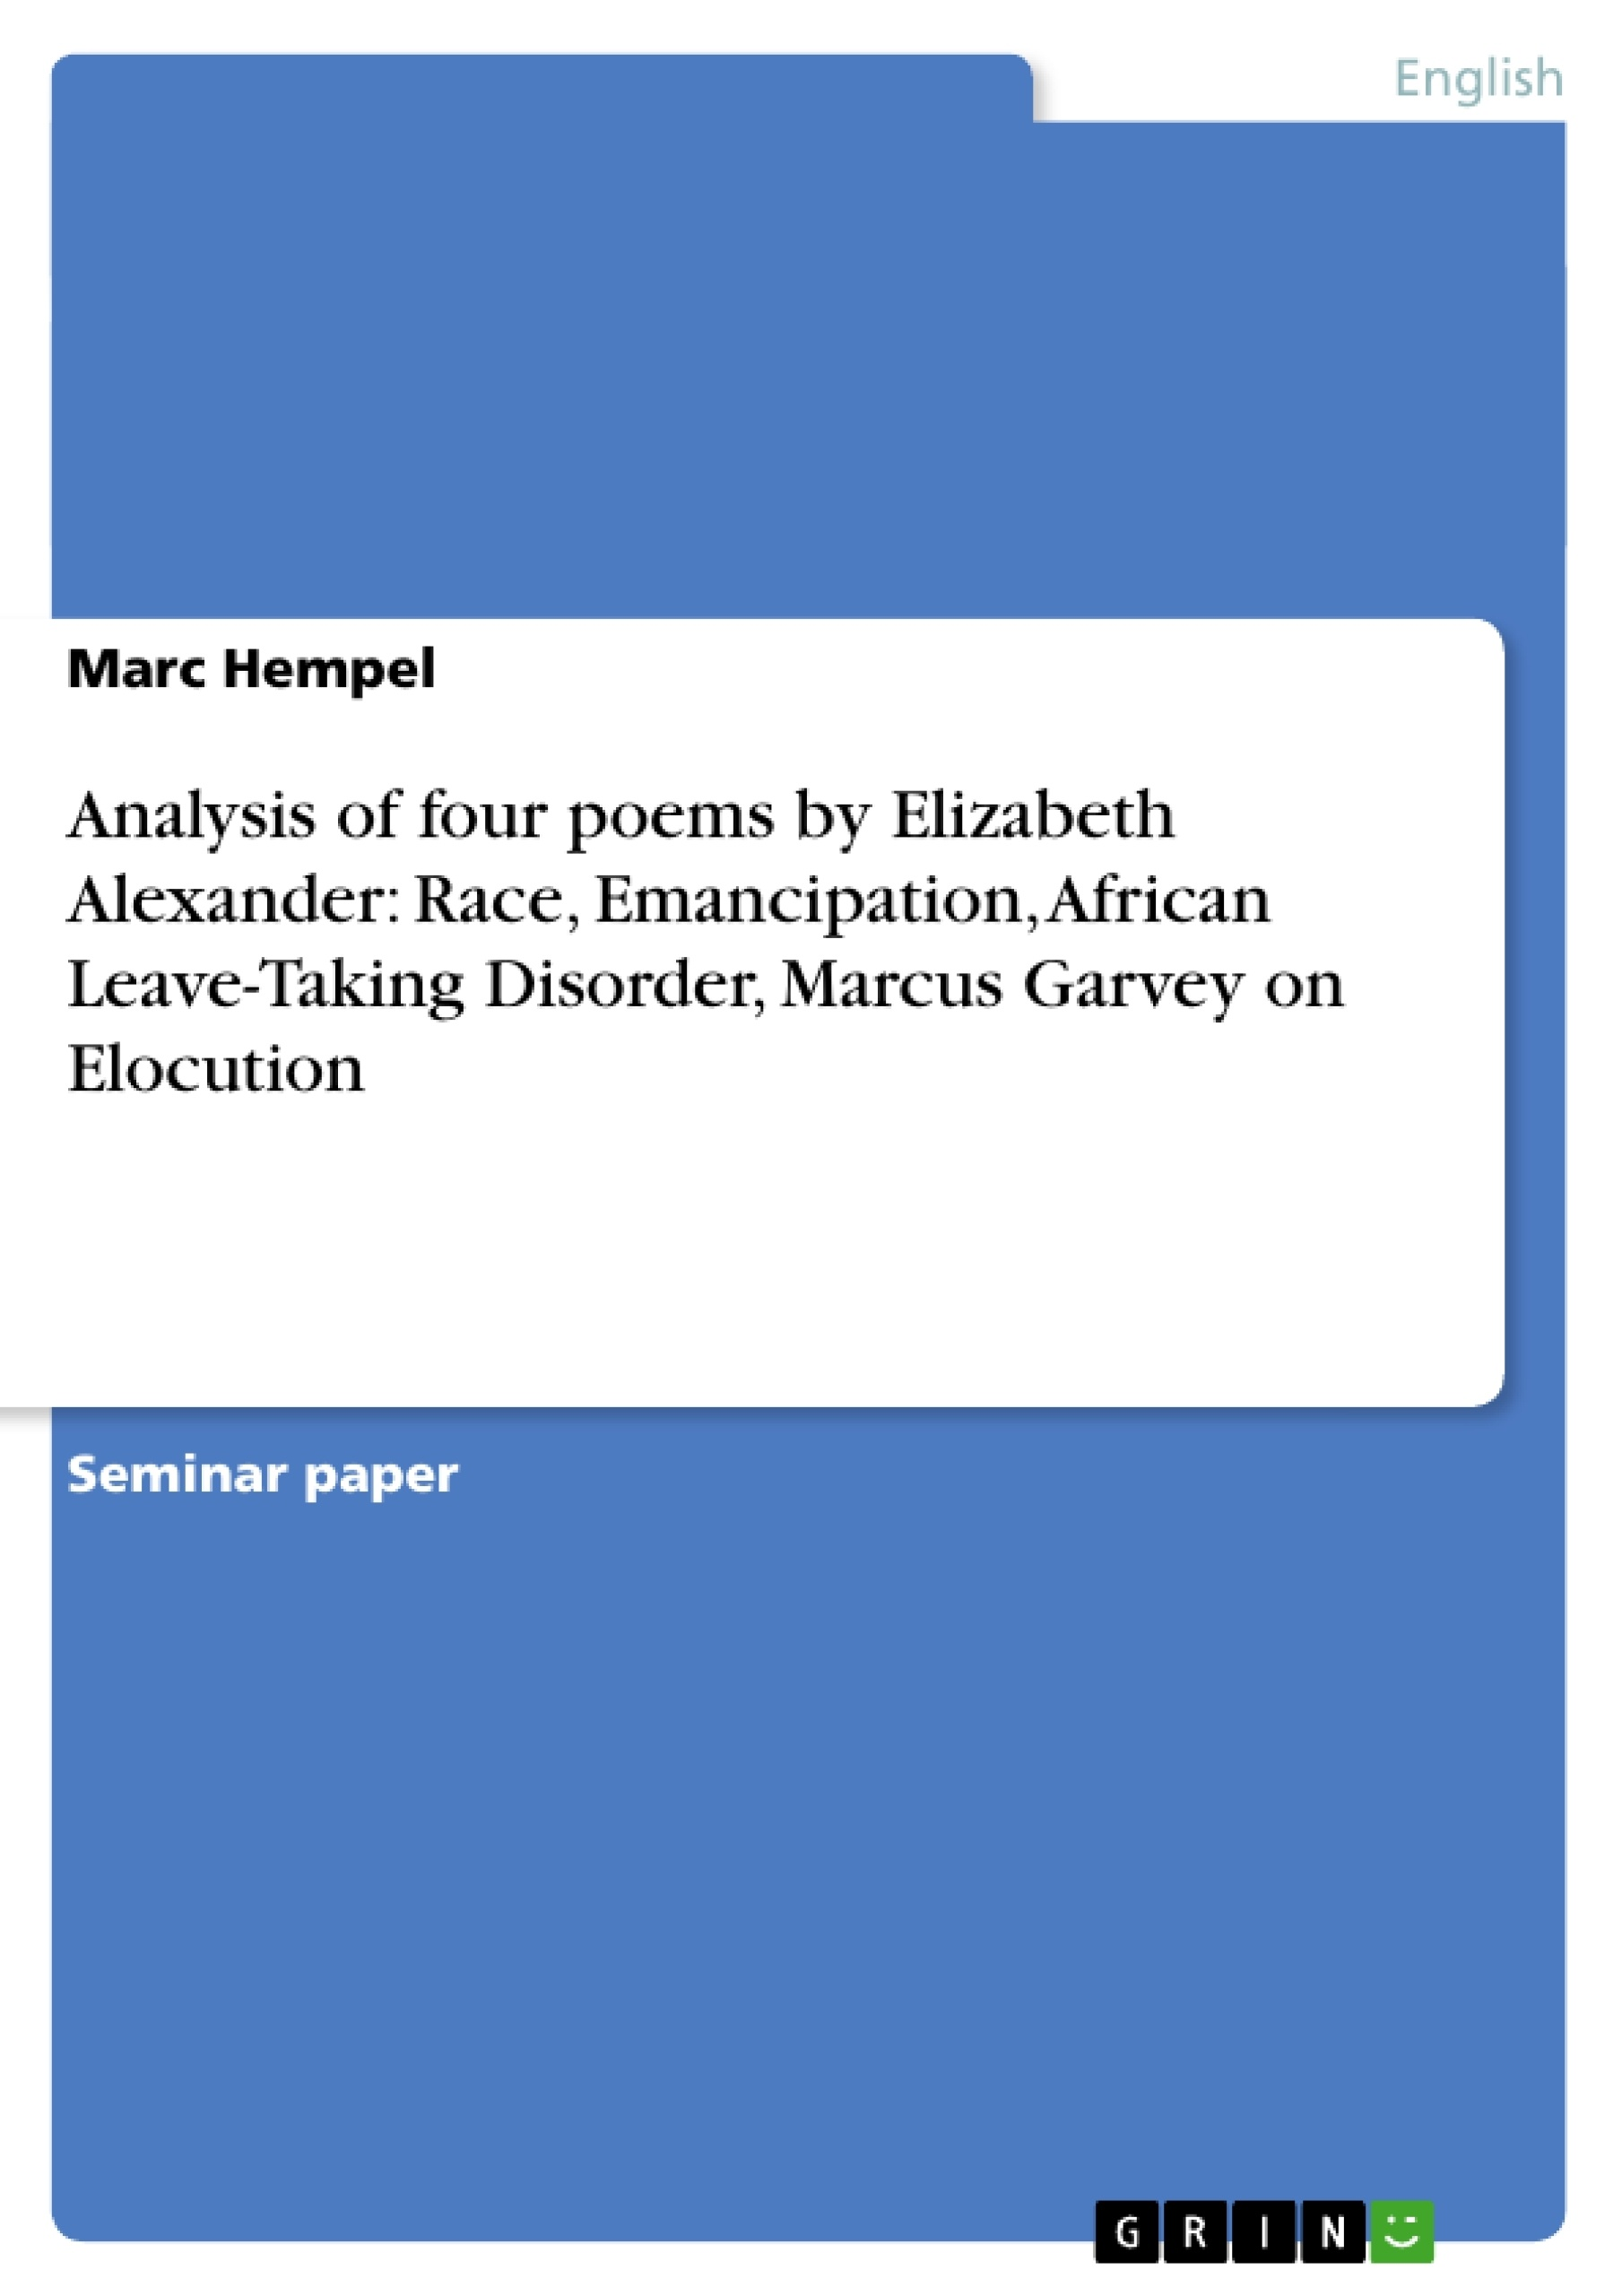 Title: Analysis of four poems by Elizabeth Alexander: Race, Emancipation, African Leave-Taking Disorder, Marcus Garvey on Elocution